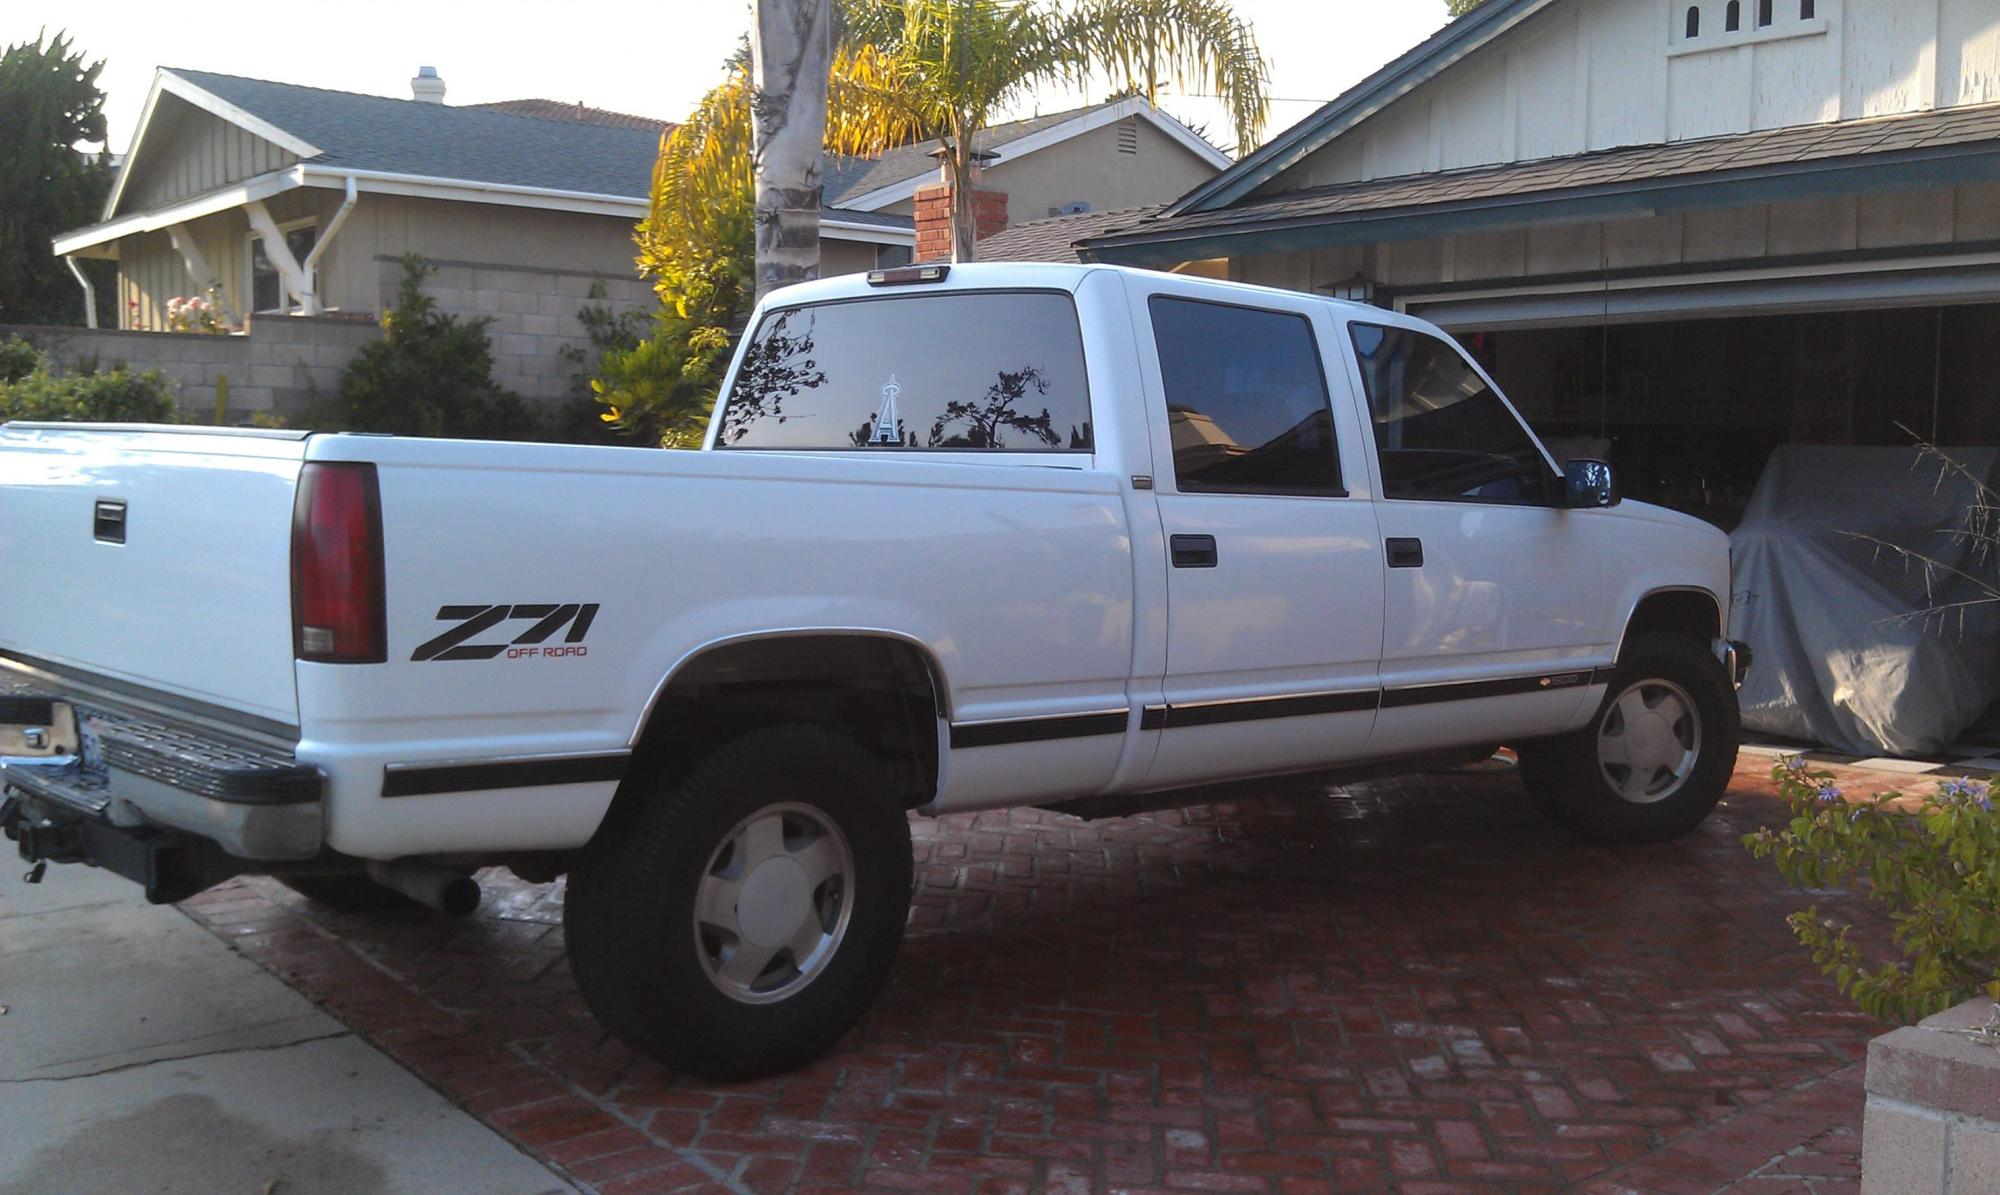 hight resolution of how rare is a 1998 z71 crew cab